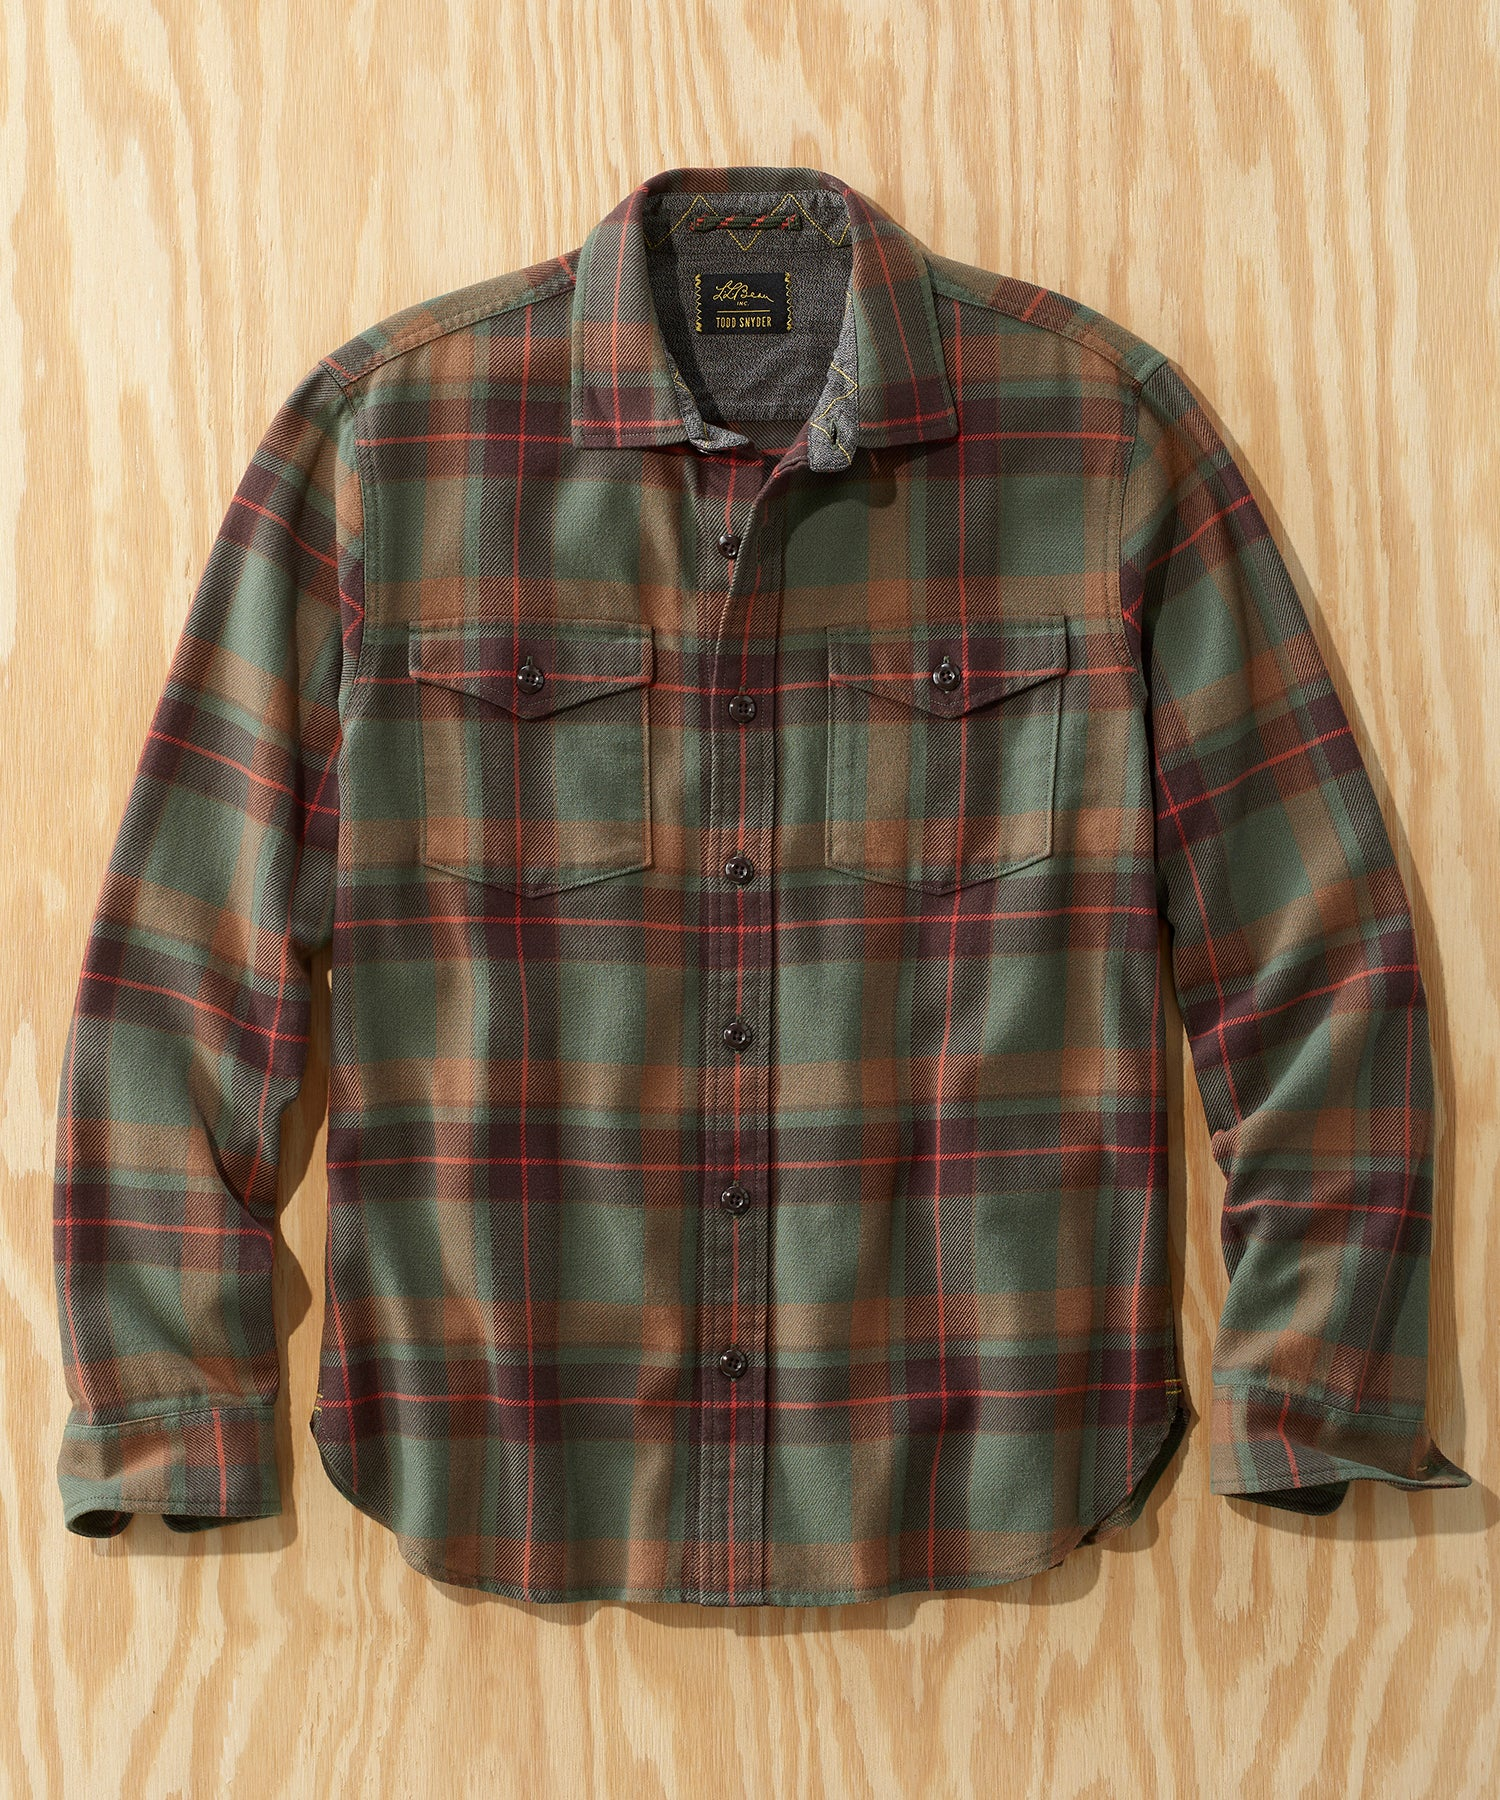 L.L.Bean x Todd Snyder Heavyweight Plaid Shirt in Sage